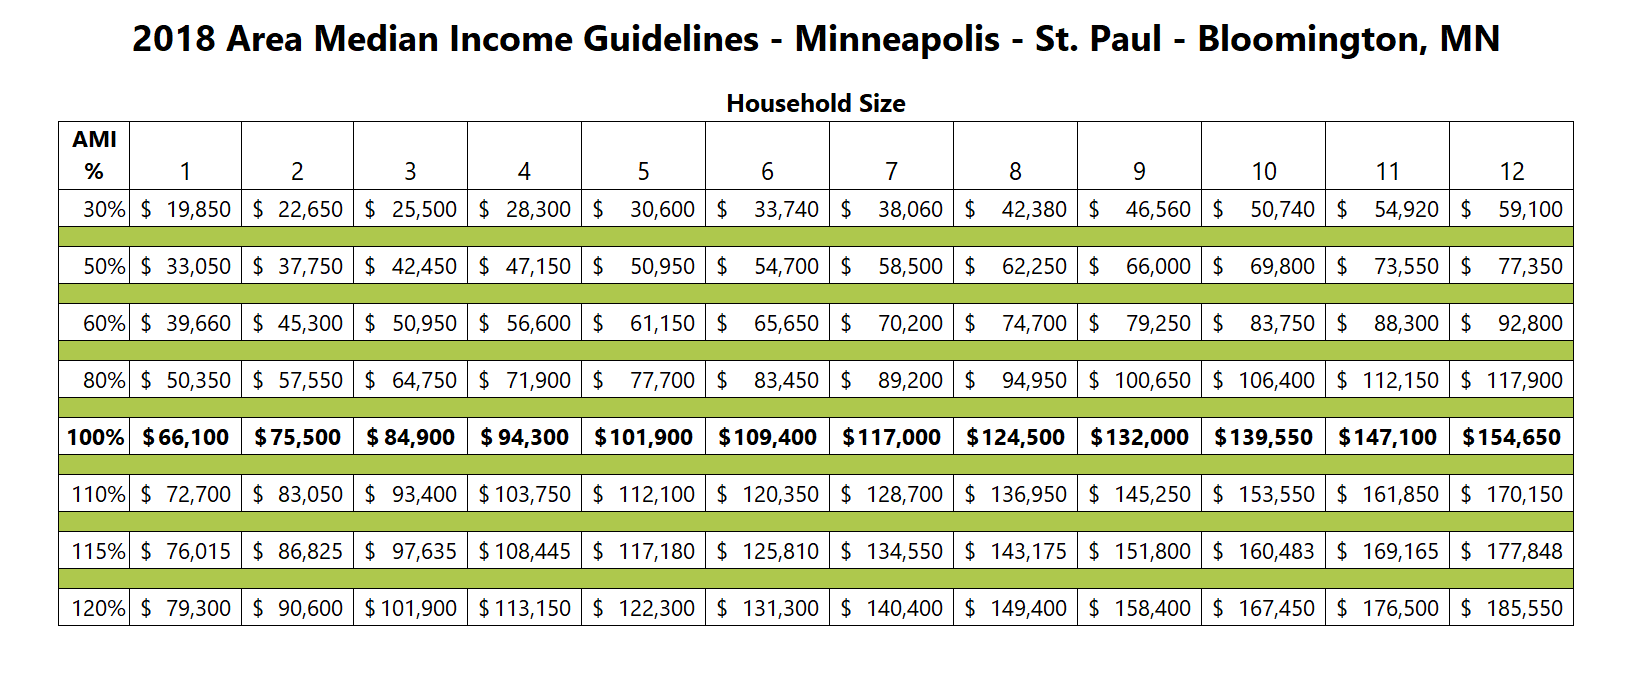 2018 HUD Area Median Income Limits for Minneapolis-St. Paul -Bloomington MN